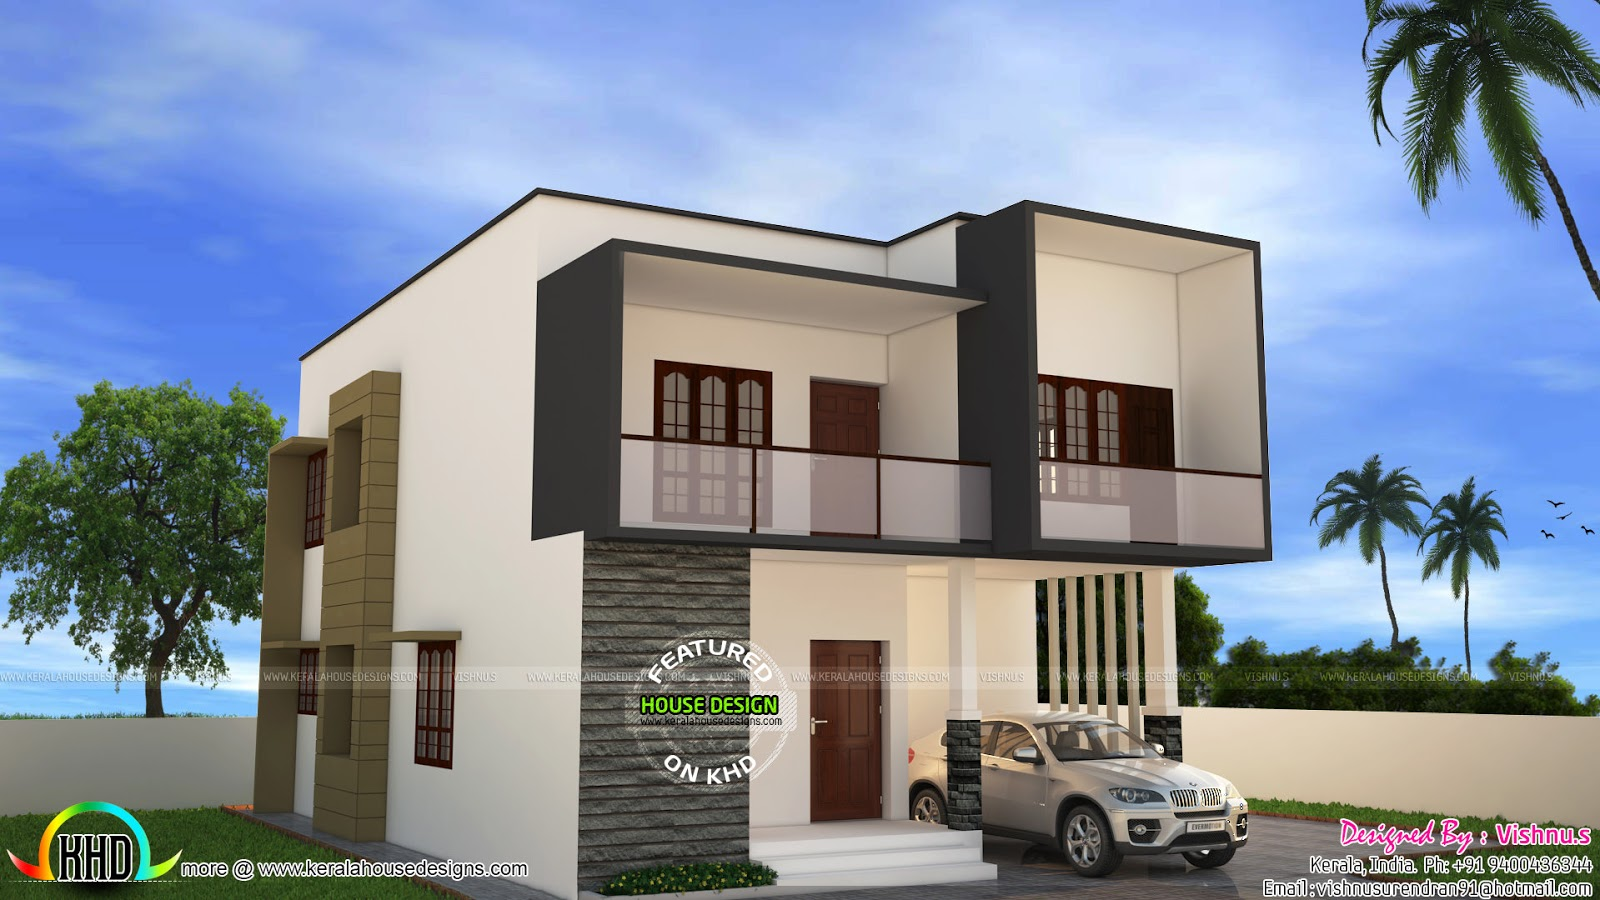 Simple modern house by vishnu s kerala home design and for Simple house design